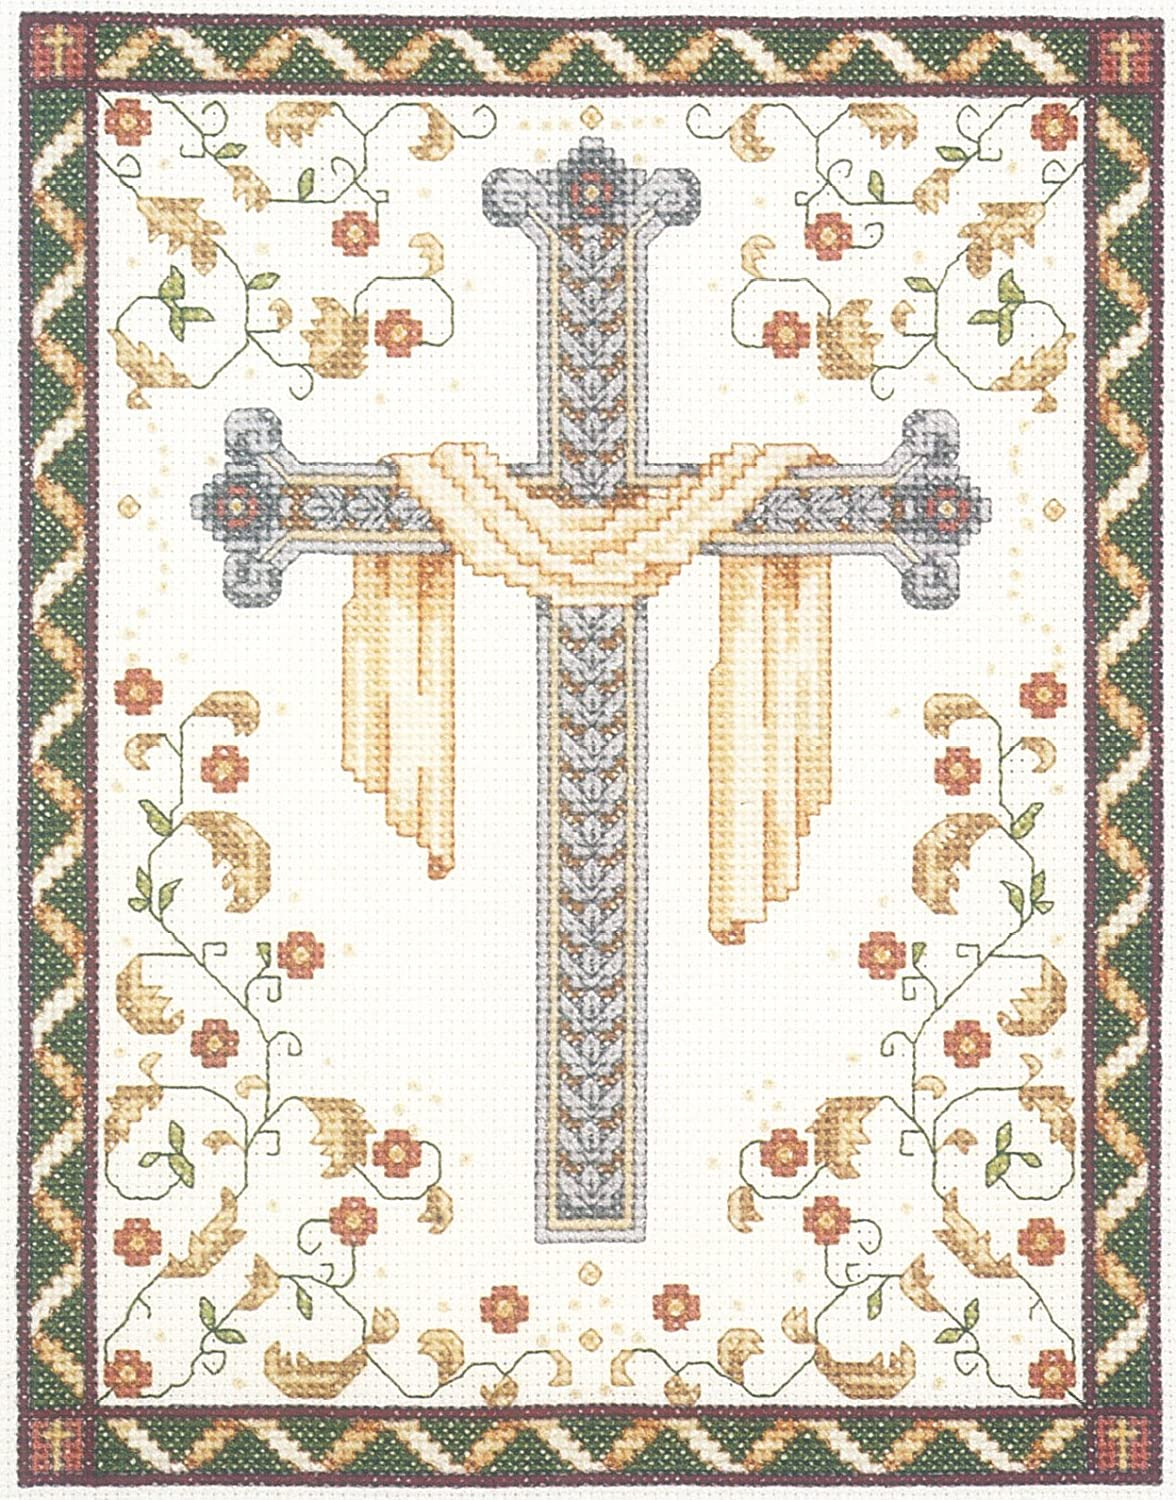 Janlynn 10235 His Cross Counted Cross Stitch Kit-8X10 14 Count 021-1018